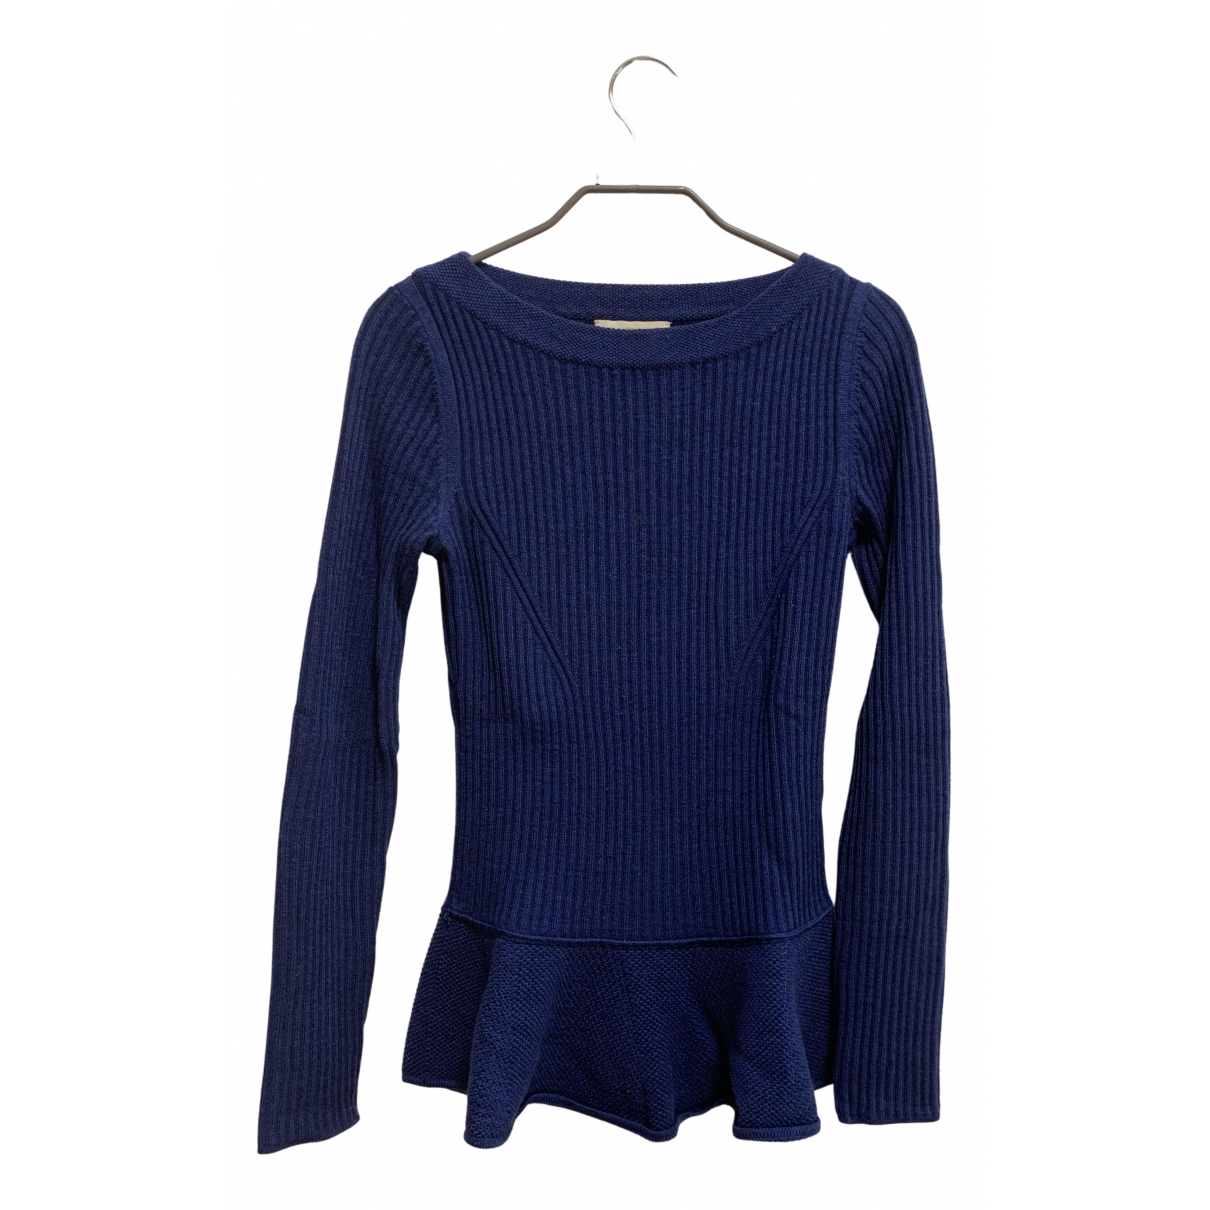 Tory Burch \N Blue Wool Knitwear for Women XS International